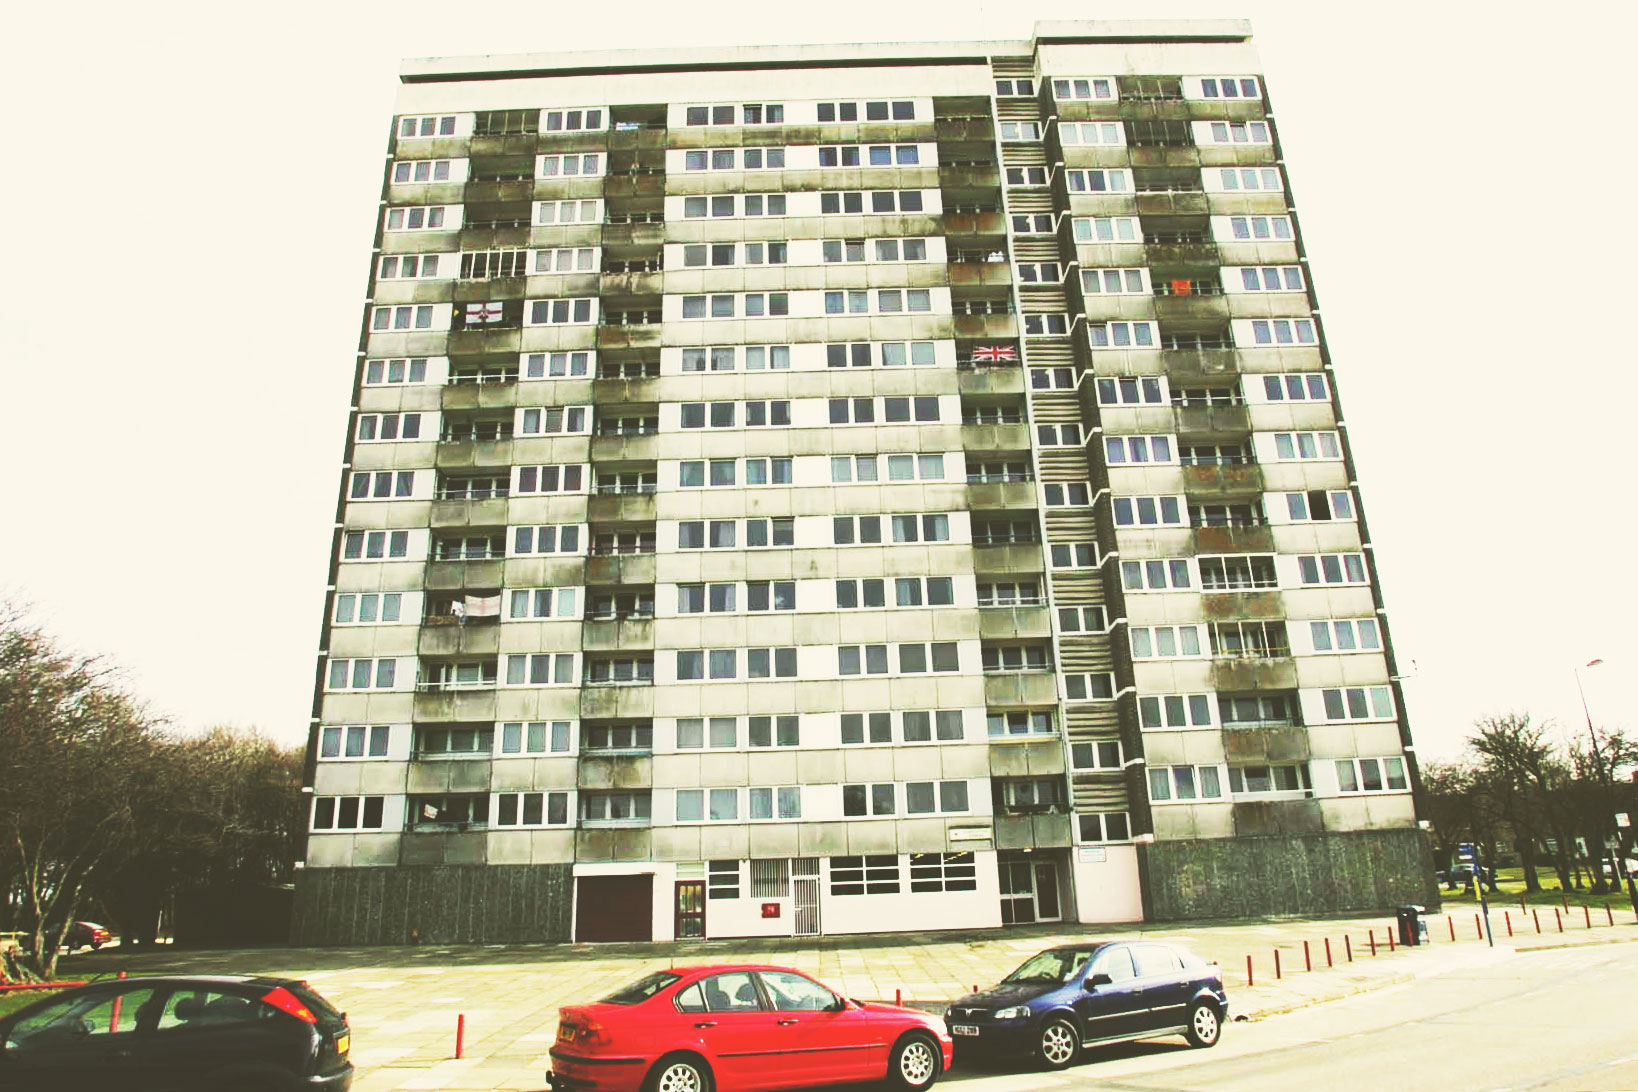 Asbestos in Tower Blocks